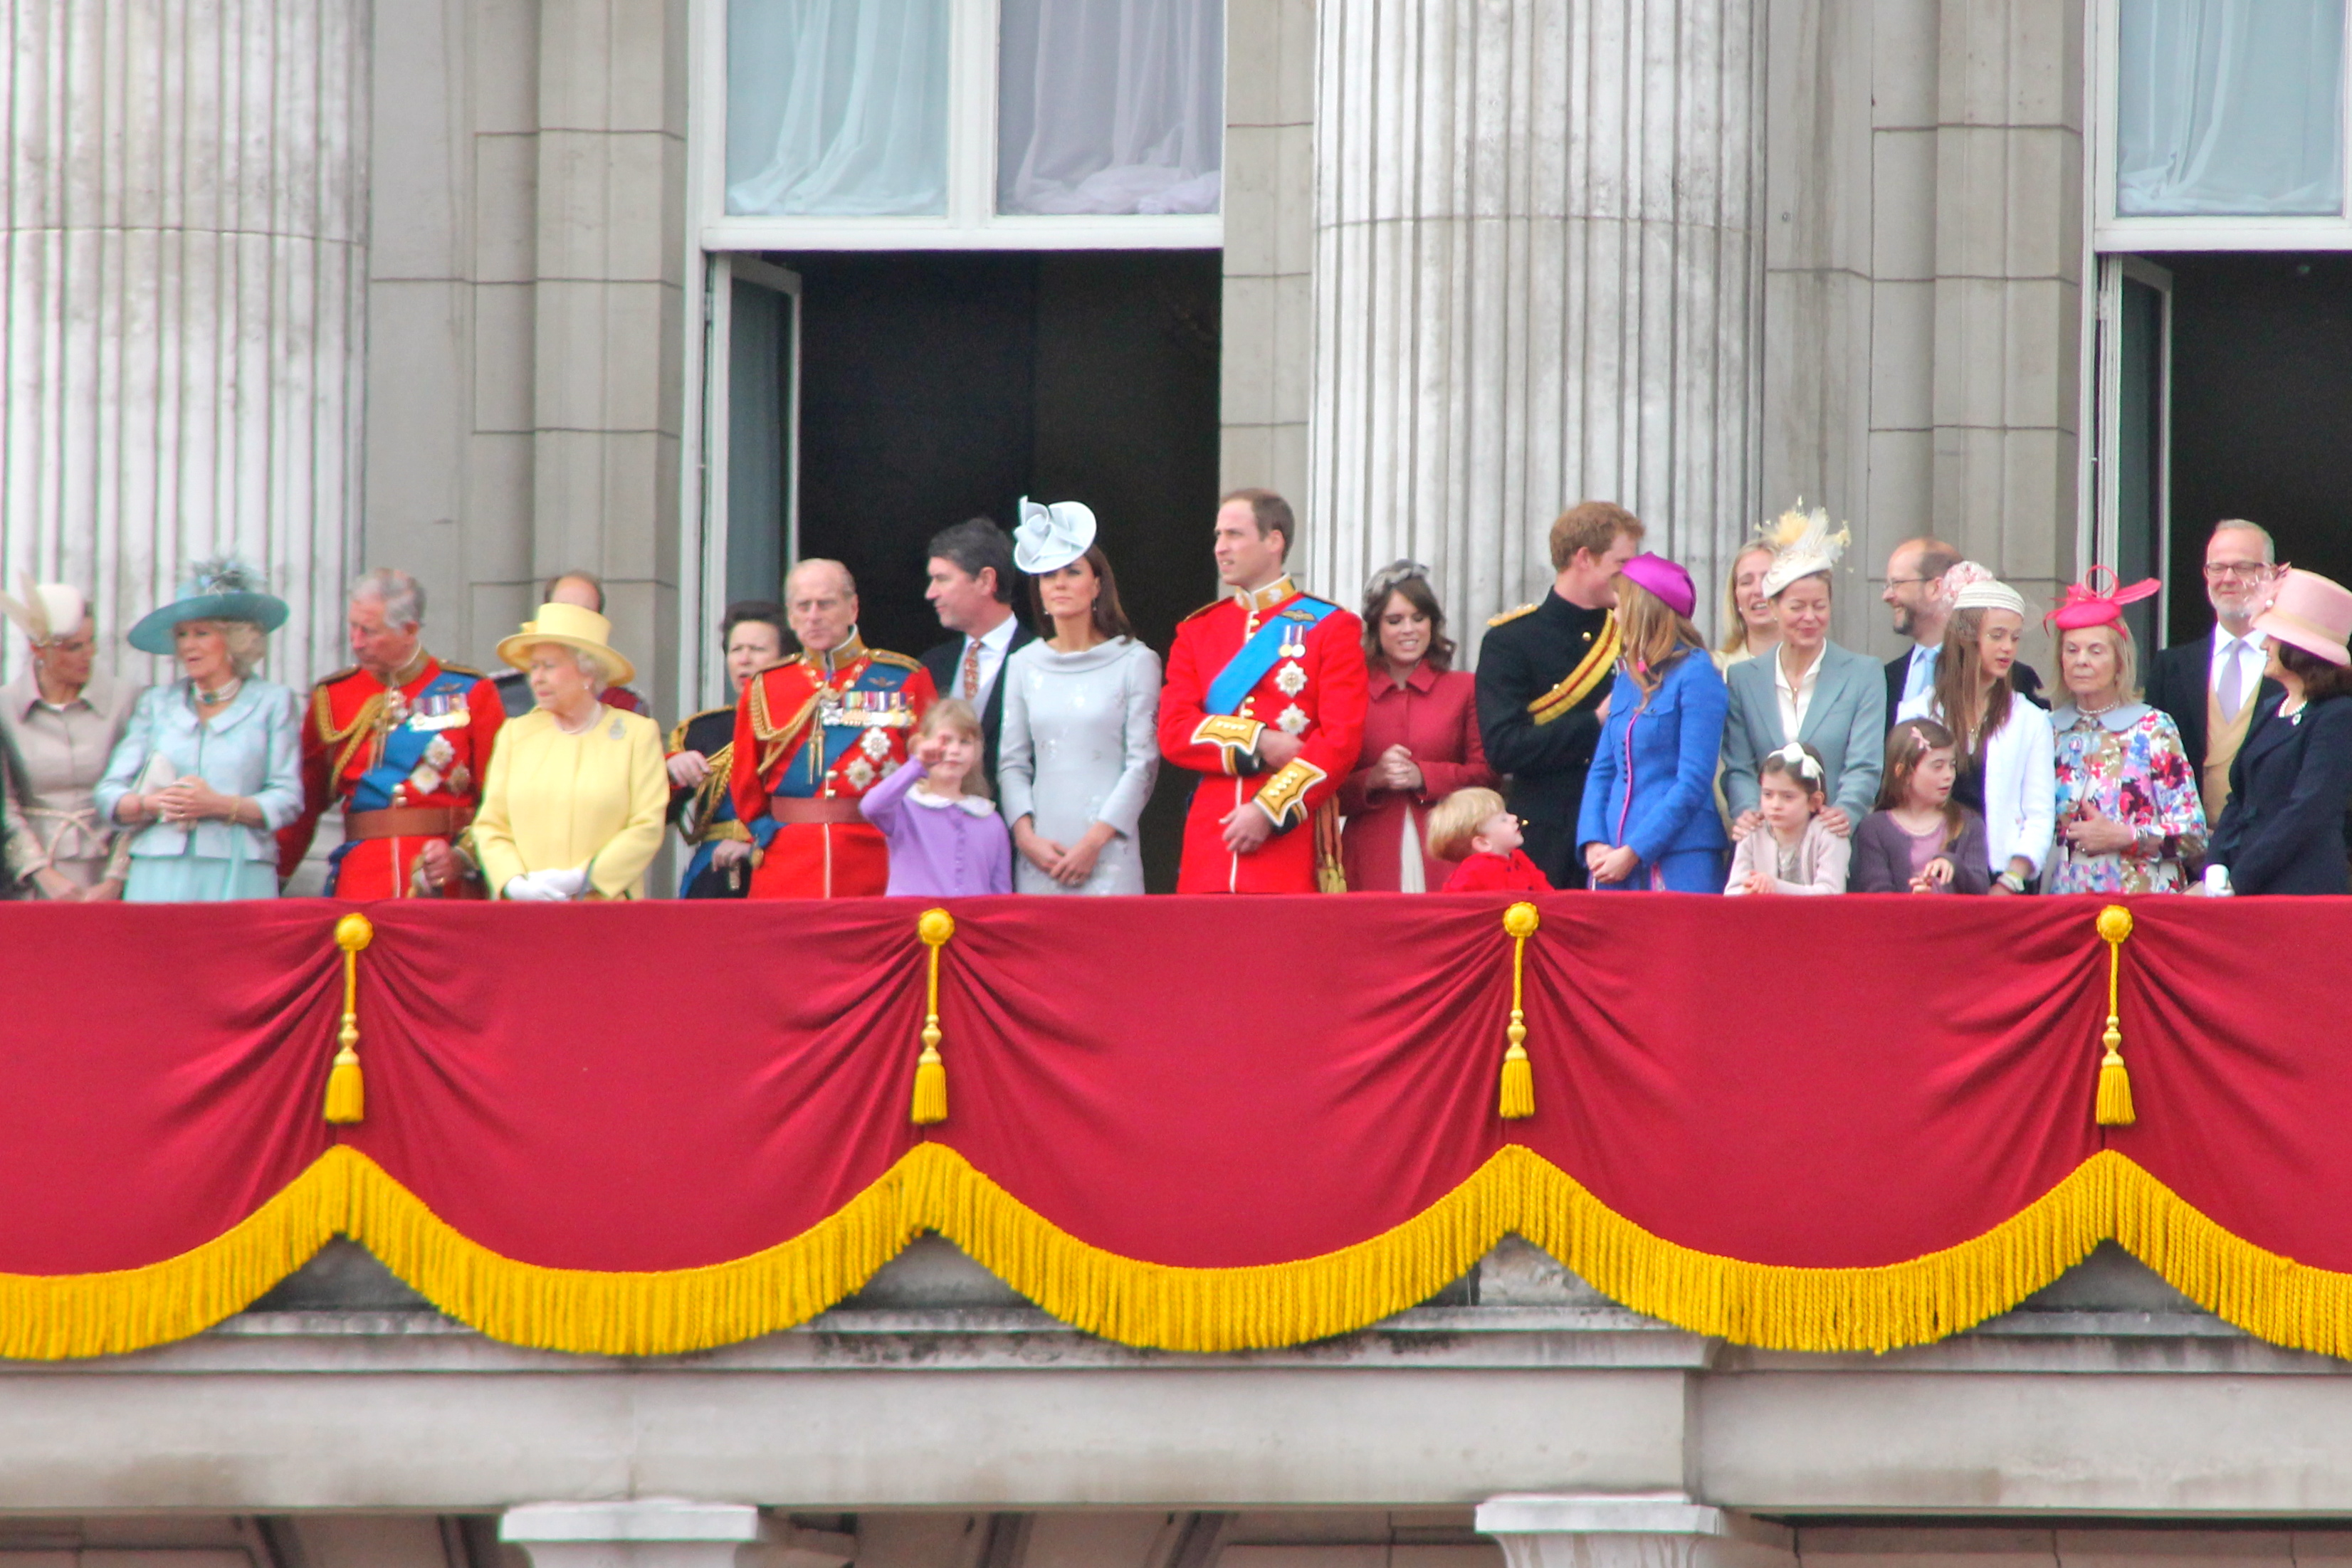 file royal family on the balcony jpg file royal family on the balcony jpg